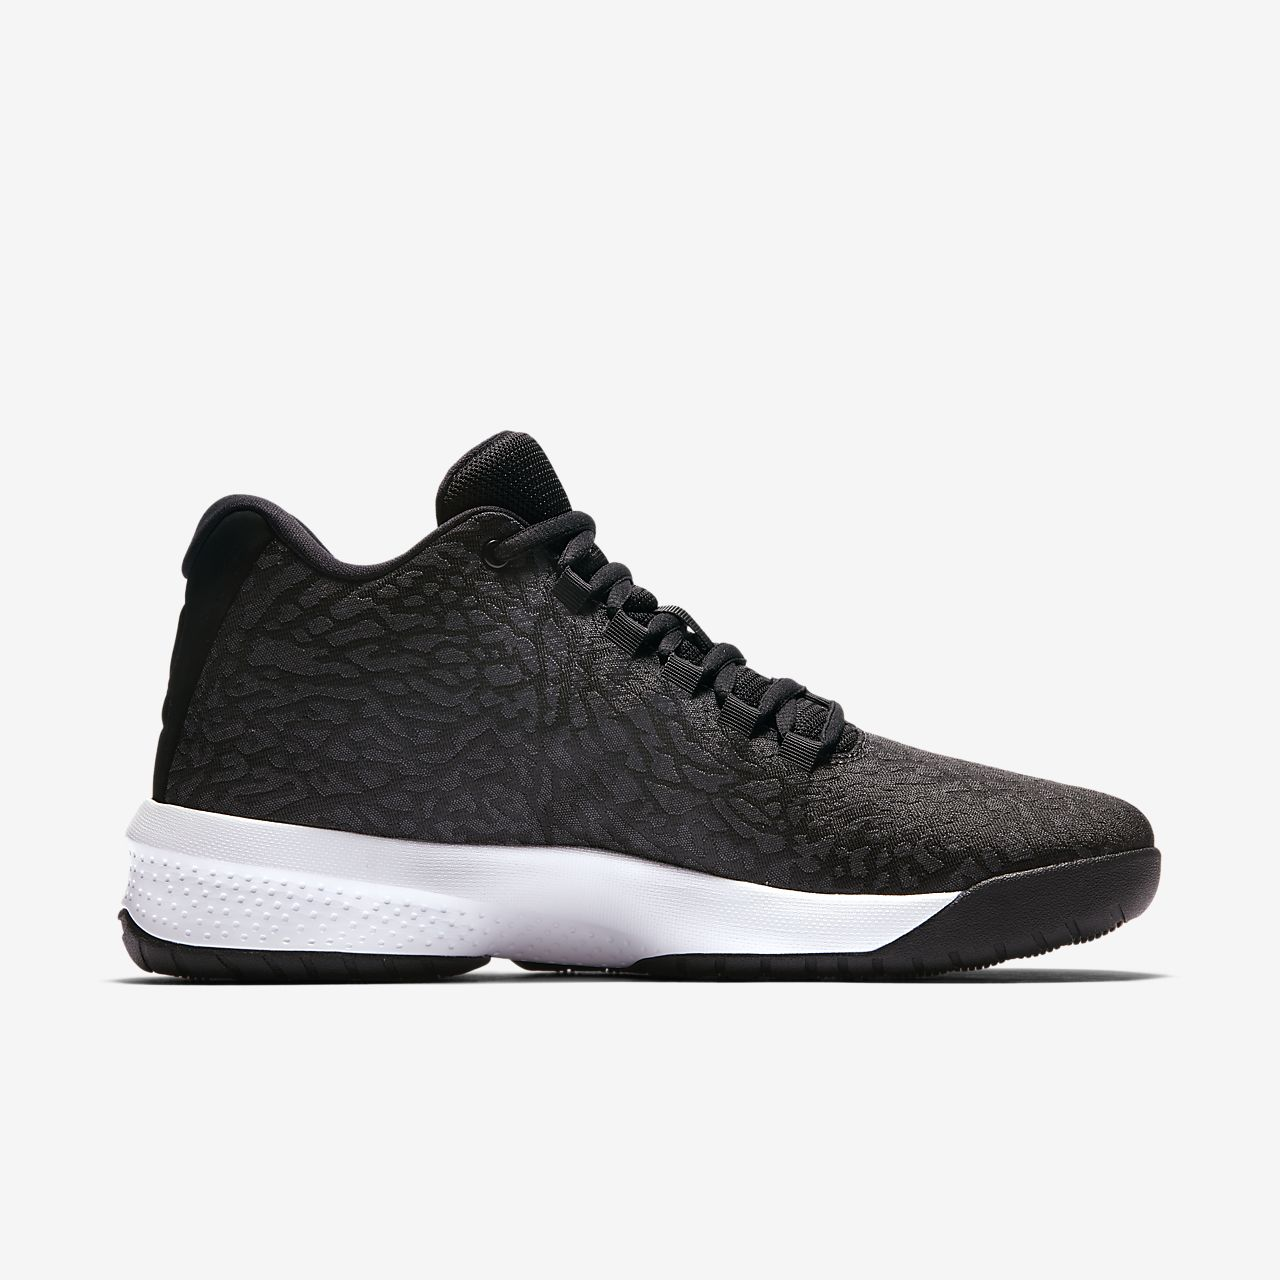 jordans basketball shoe nz